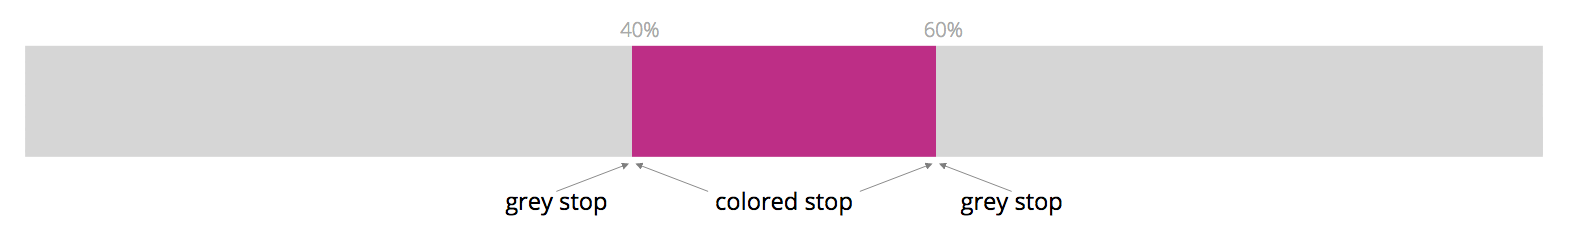 Using gradients for abrupt color changes in data visualizations